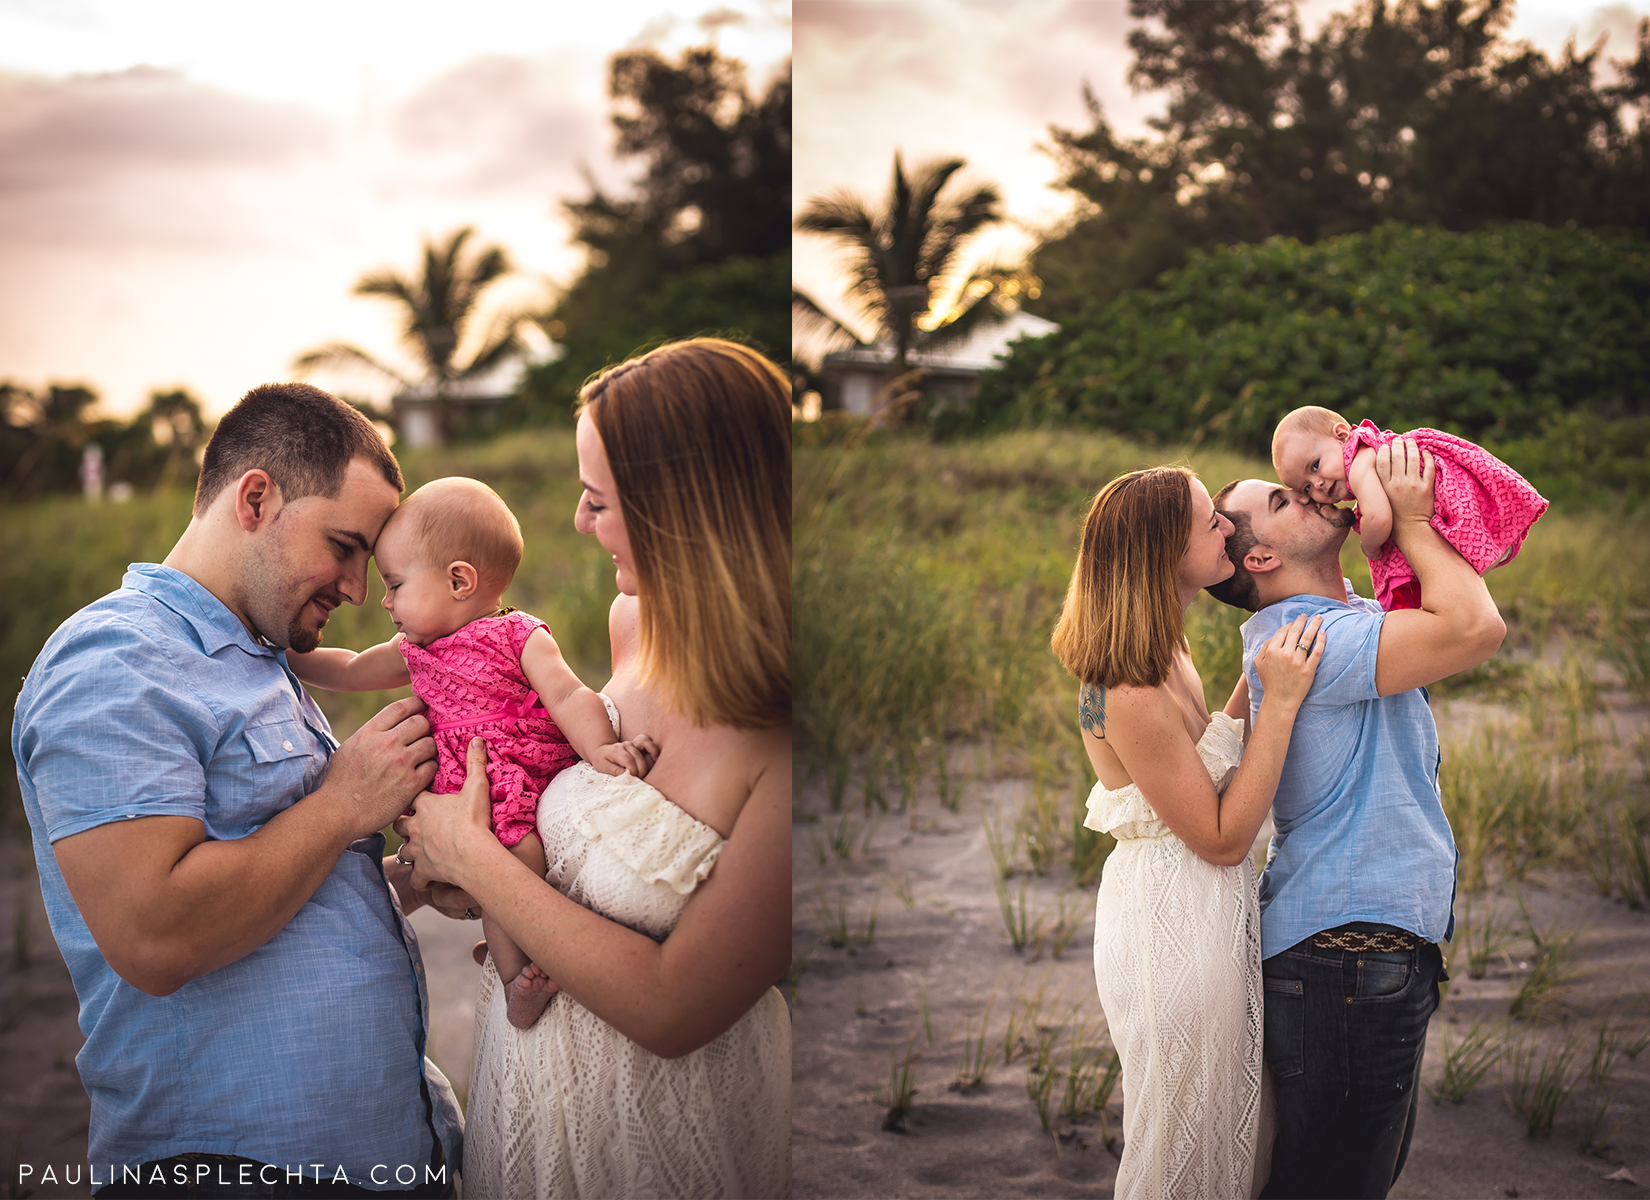 family-photographer-photo-shoot-boca-raton-delray-beach-west-palm-ft-lauderdale-south-florida-baby-smash-cake.png